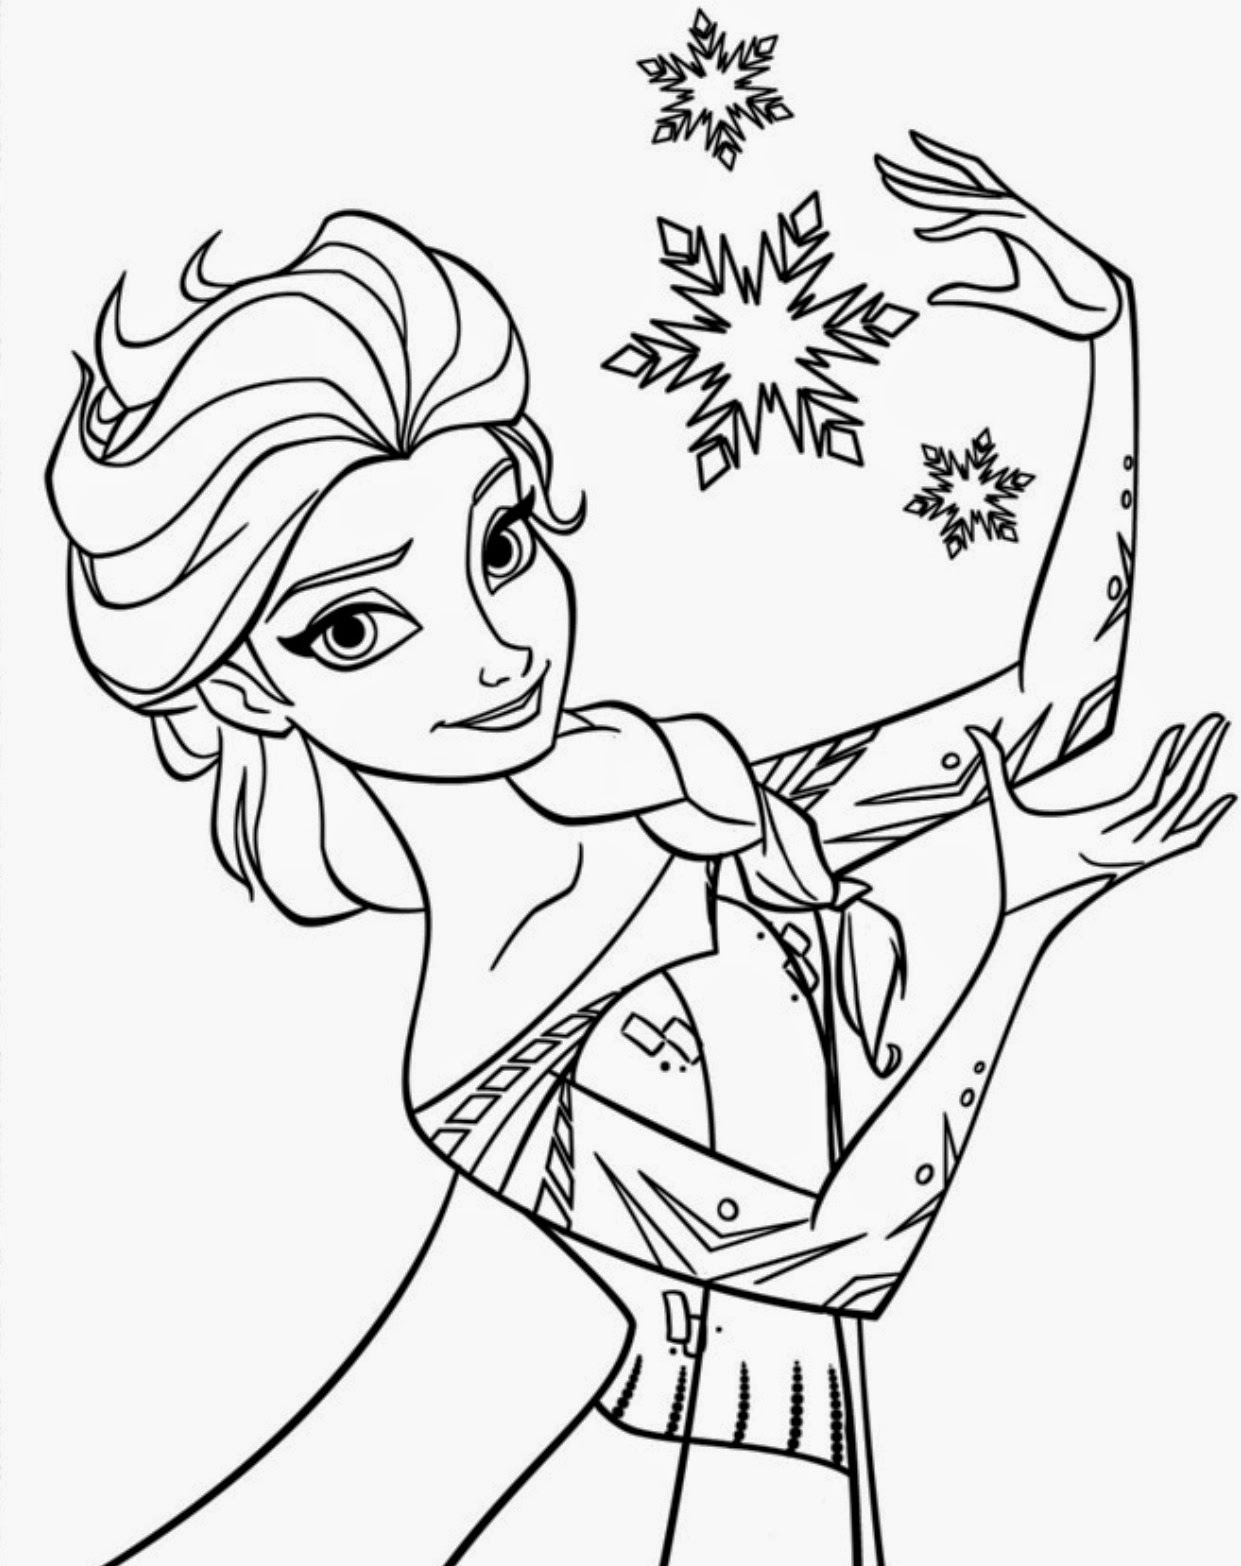 disney free colouring pages 15 beautiful disney frozen coloring pages free instant disney colouring pages free